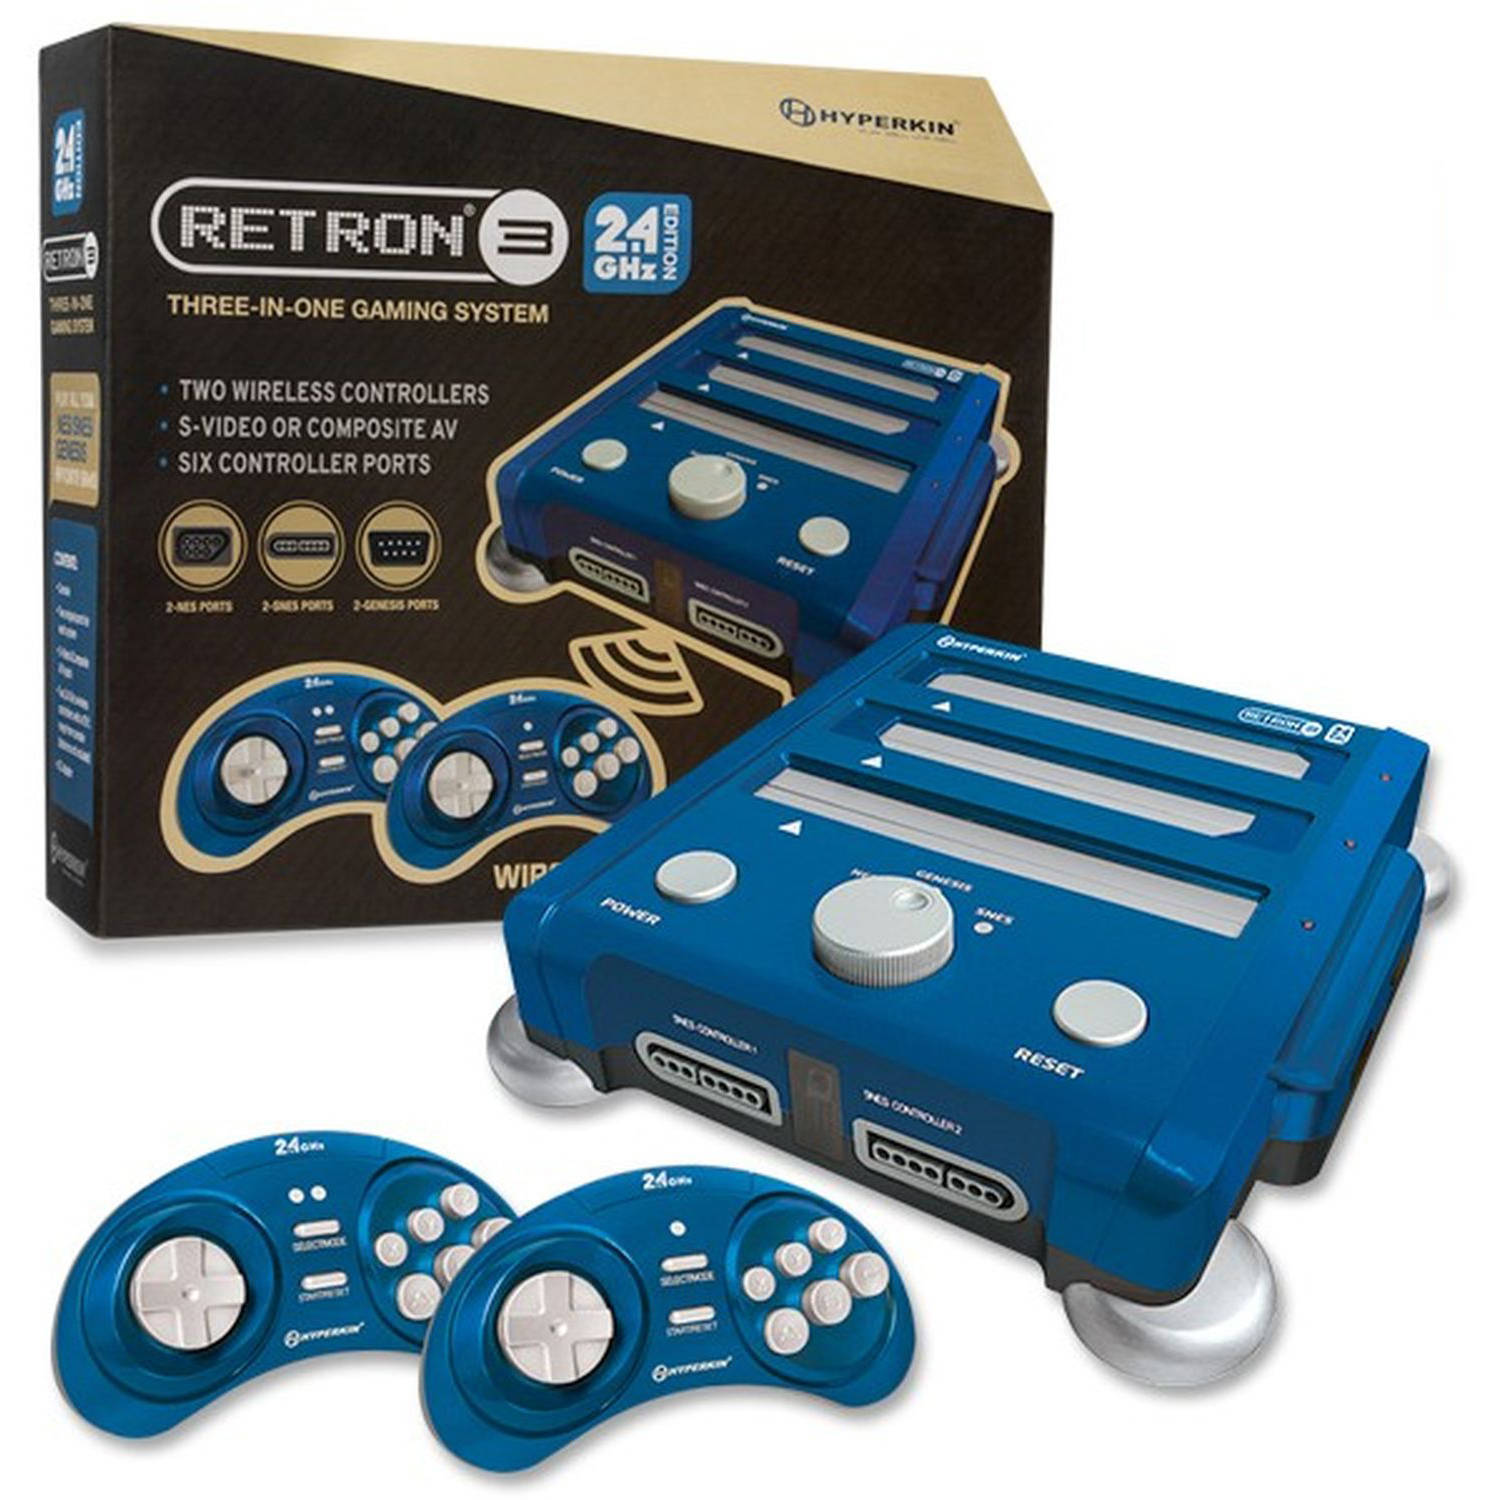 RetroN 3 Hyperkin 3-in-1 Console, Blue